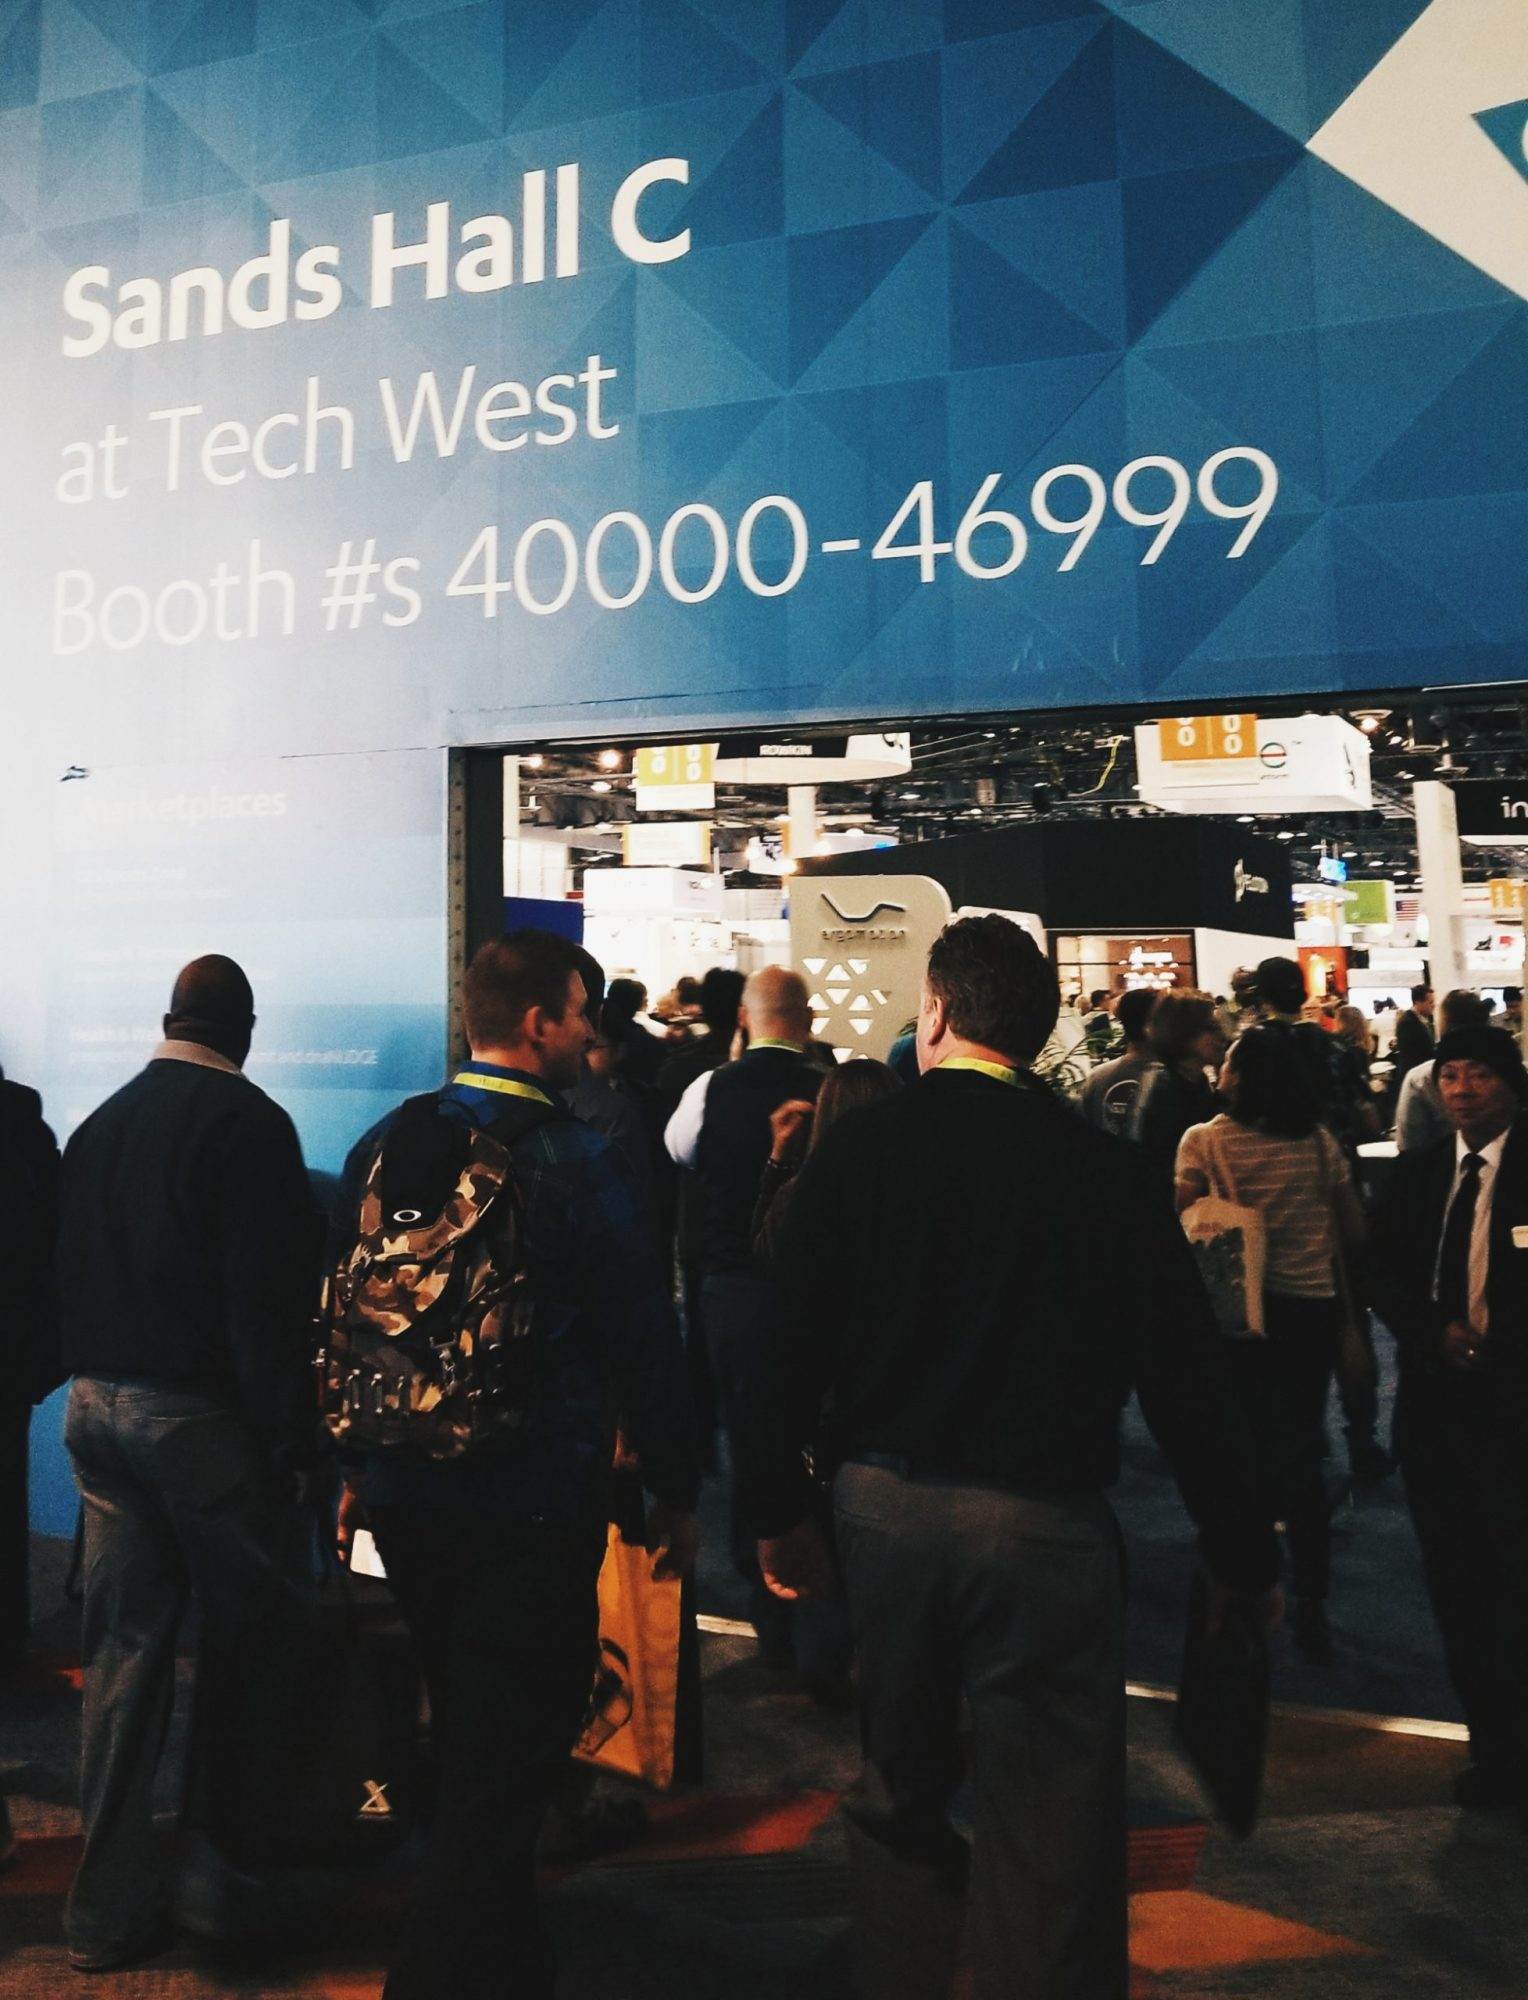 Las Vegas CES 2018 Sands Hall